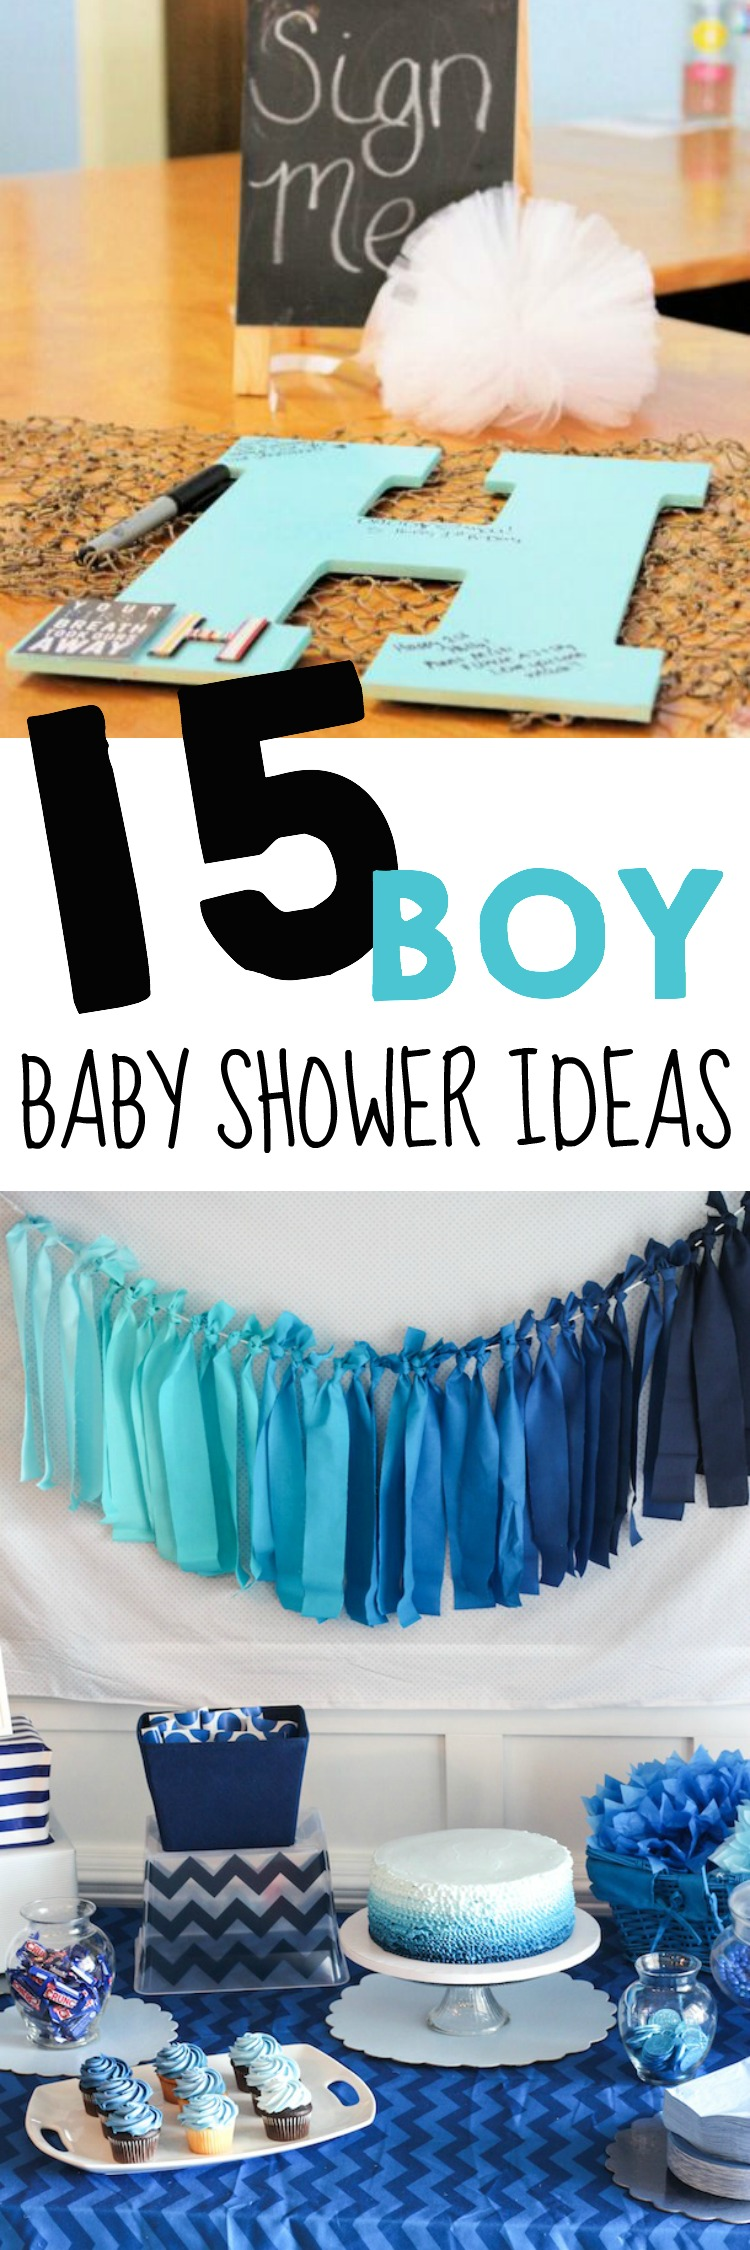 Indoor Boys Decorations Baby Shower Boys Boy Baby Shower Ideas Baby Shower Ideas Boys Food Boys Realistic Mama Baby Shower Baby Shower Ideas baby shower Baby Shower For Boys